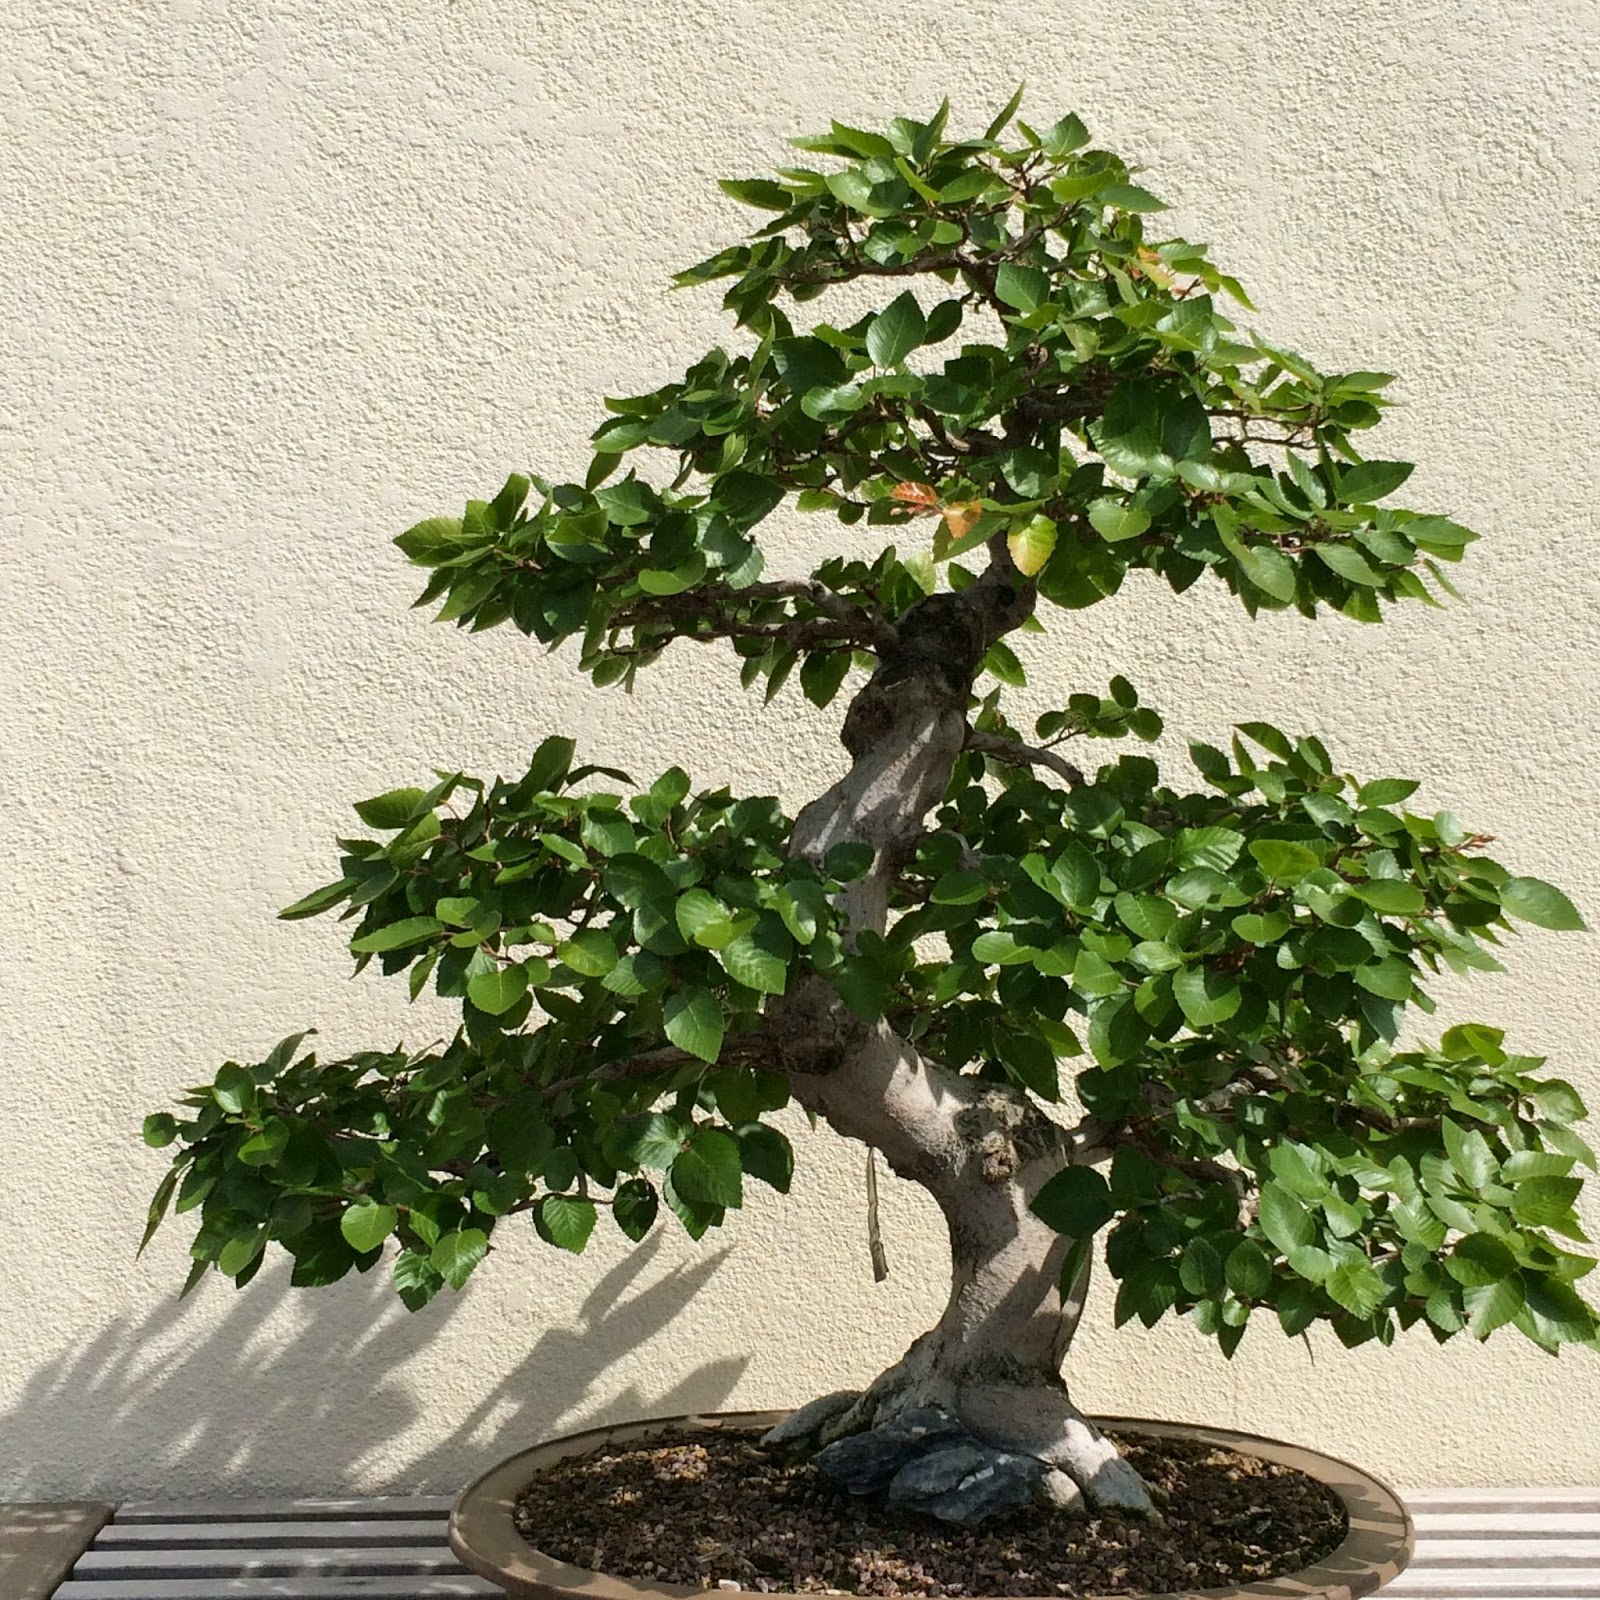 Visual St Paul Bonsai Trees ABC WEDNESDAY QuotBquot